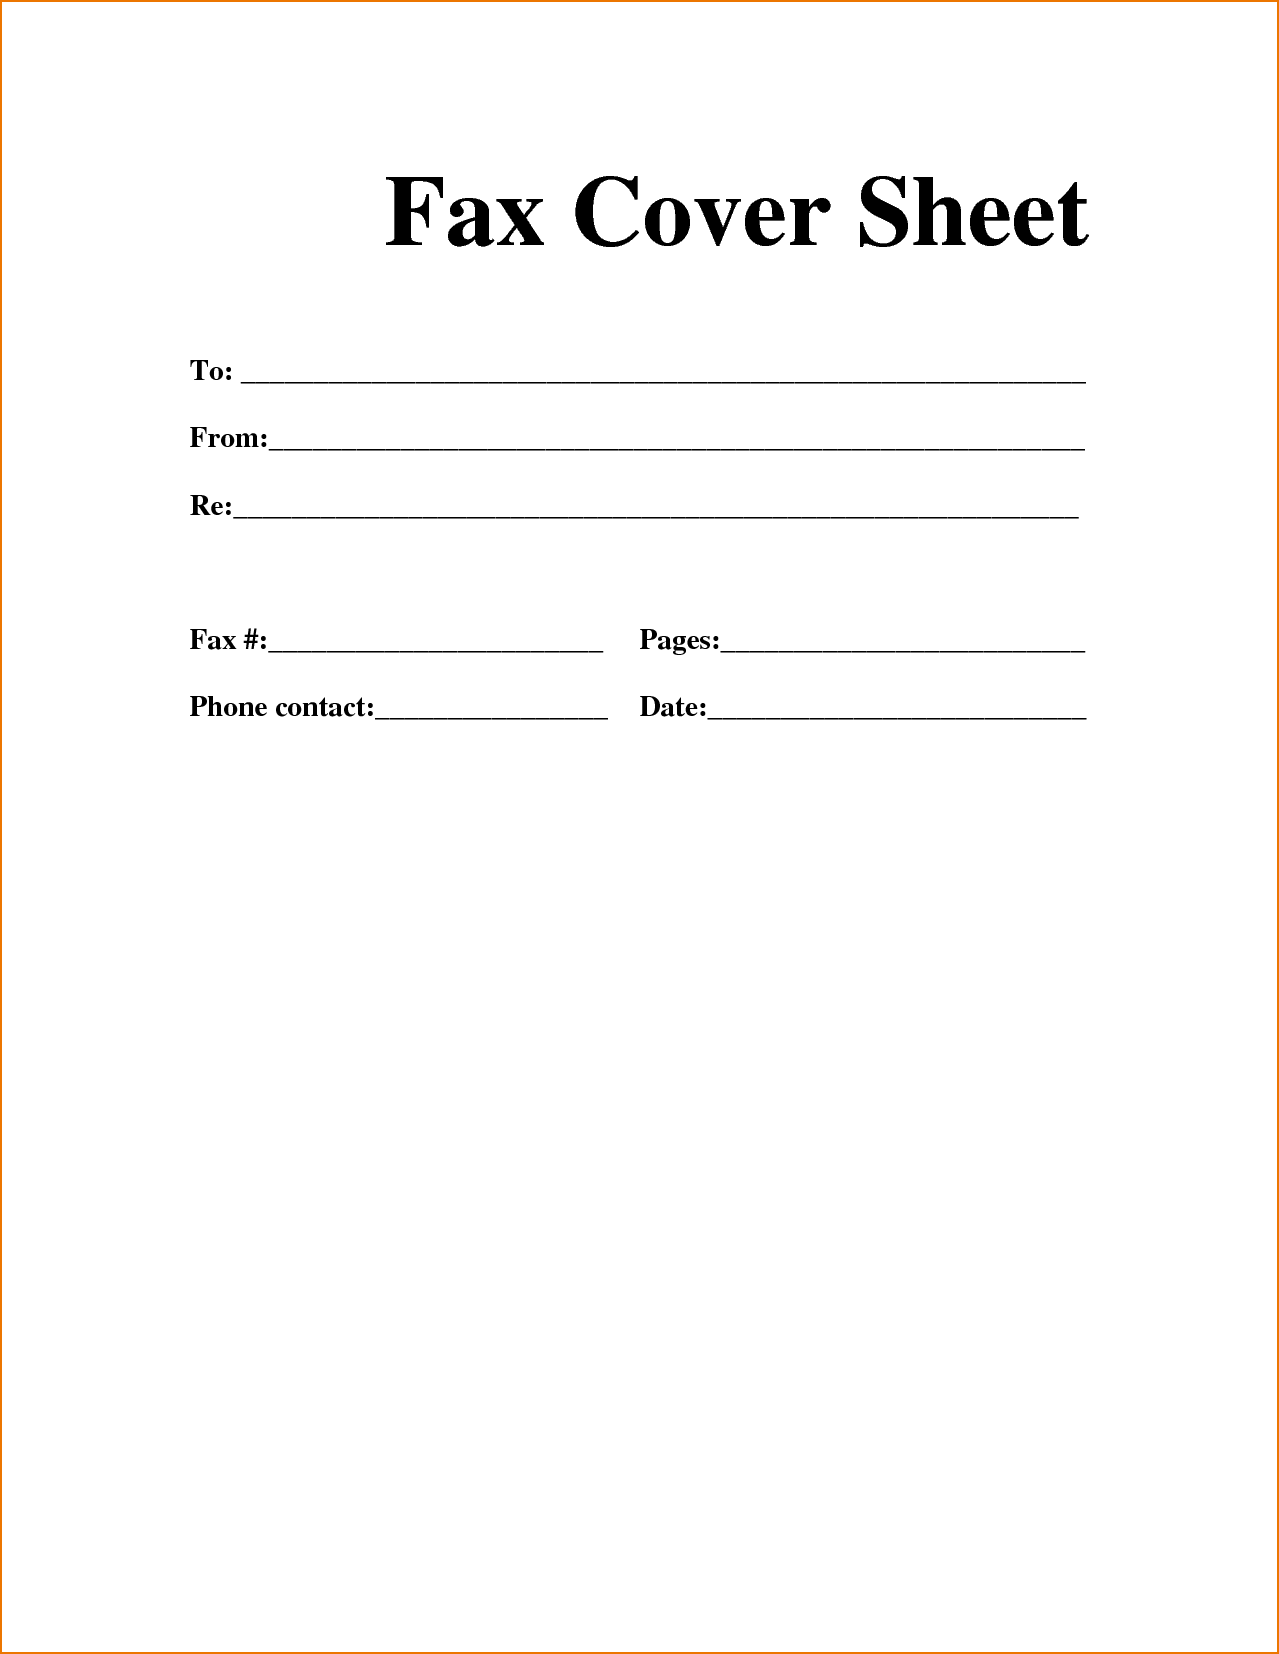 Fax Cover Letter Sample Sample Personal Fax Cover Sheet Template In 2019 Cover Sheet